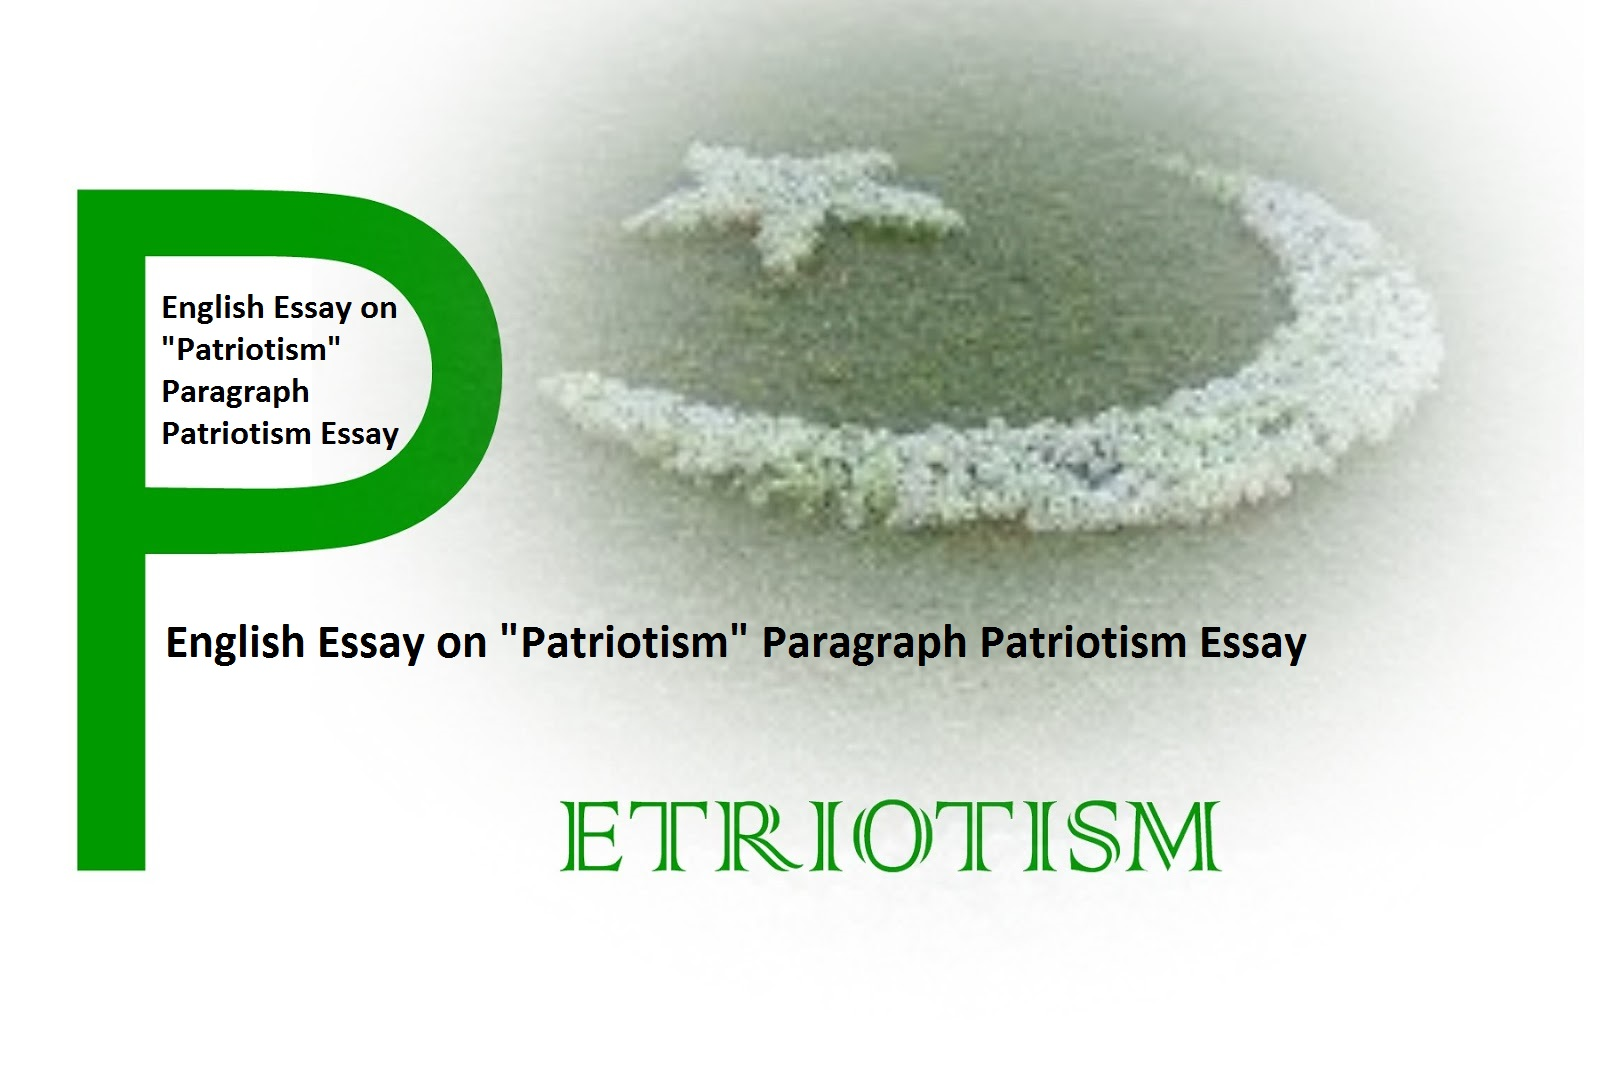 Patriotism Essay In English Pdf Essay On Patriotism For College  Patriotism Essay In English Pdf Essays On High School also Interesting Persuasive Essay Topics For High School Students  Pay Someone To Write My Business Plan